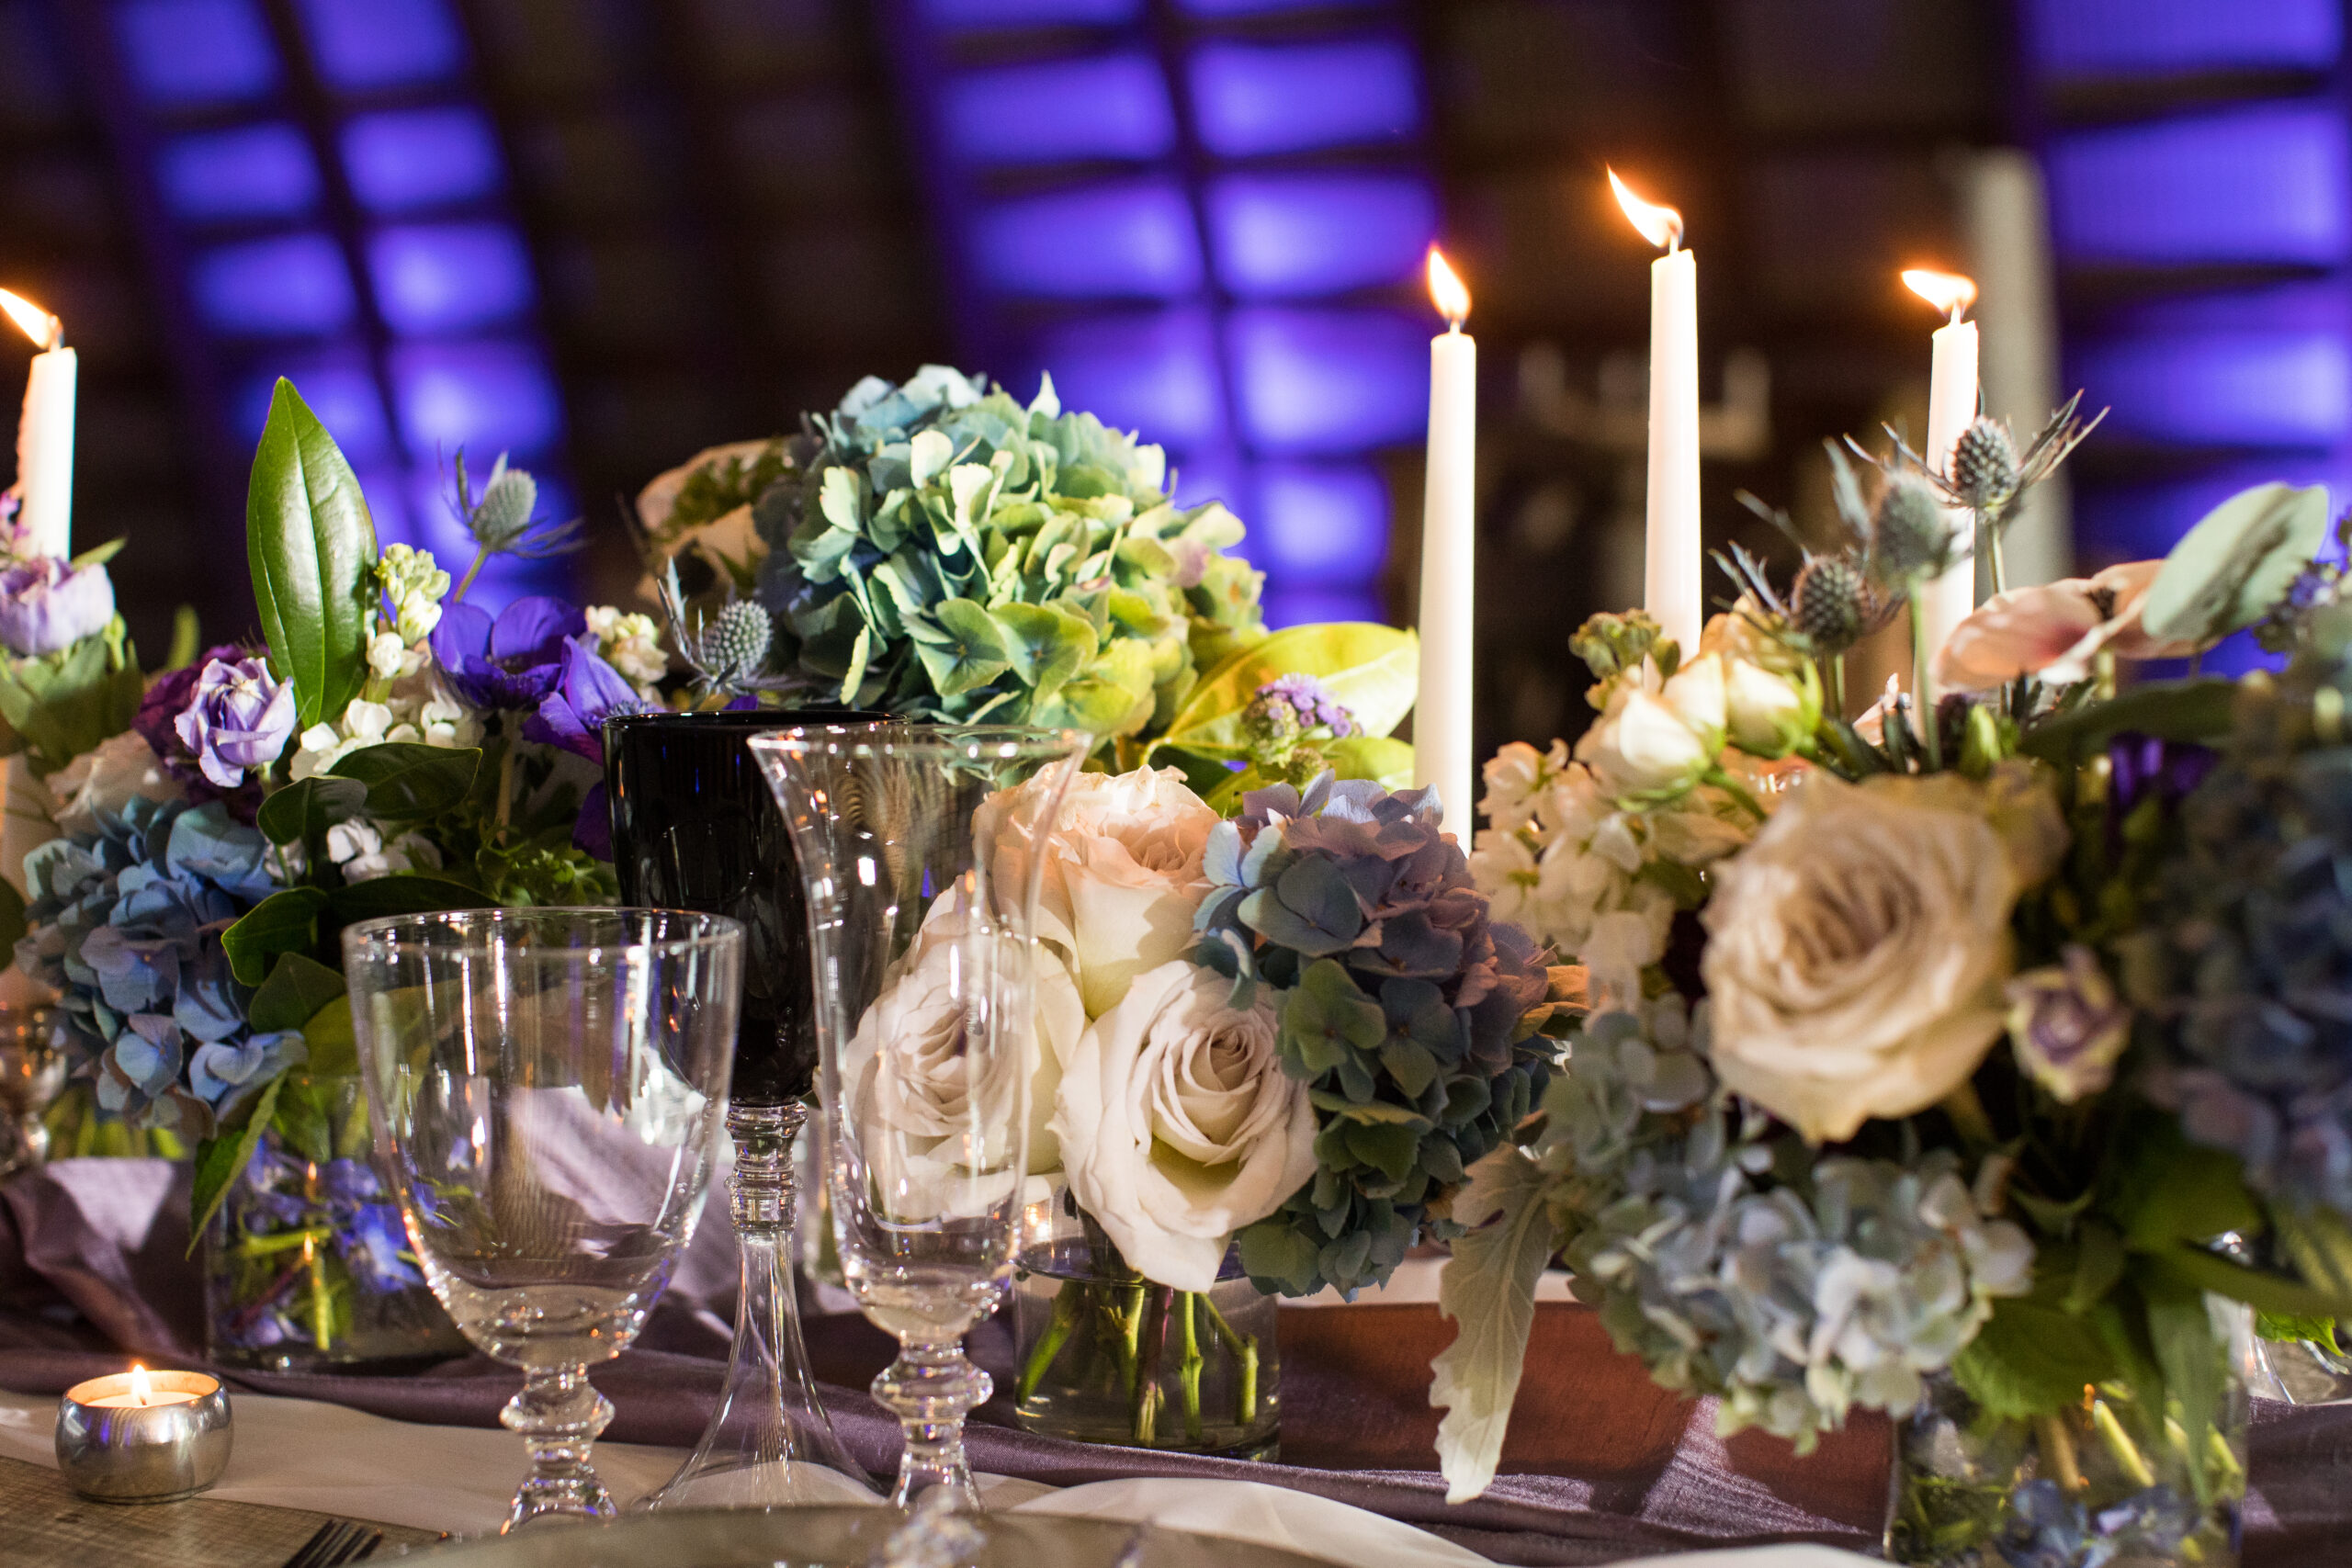 blue and purple lighting flowers long table